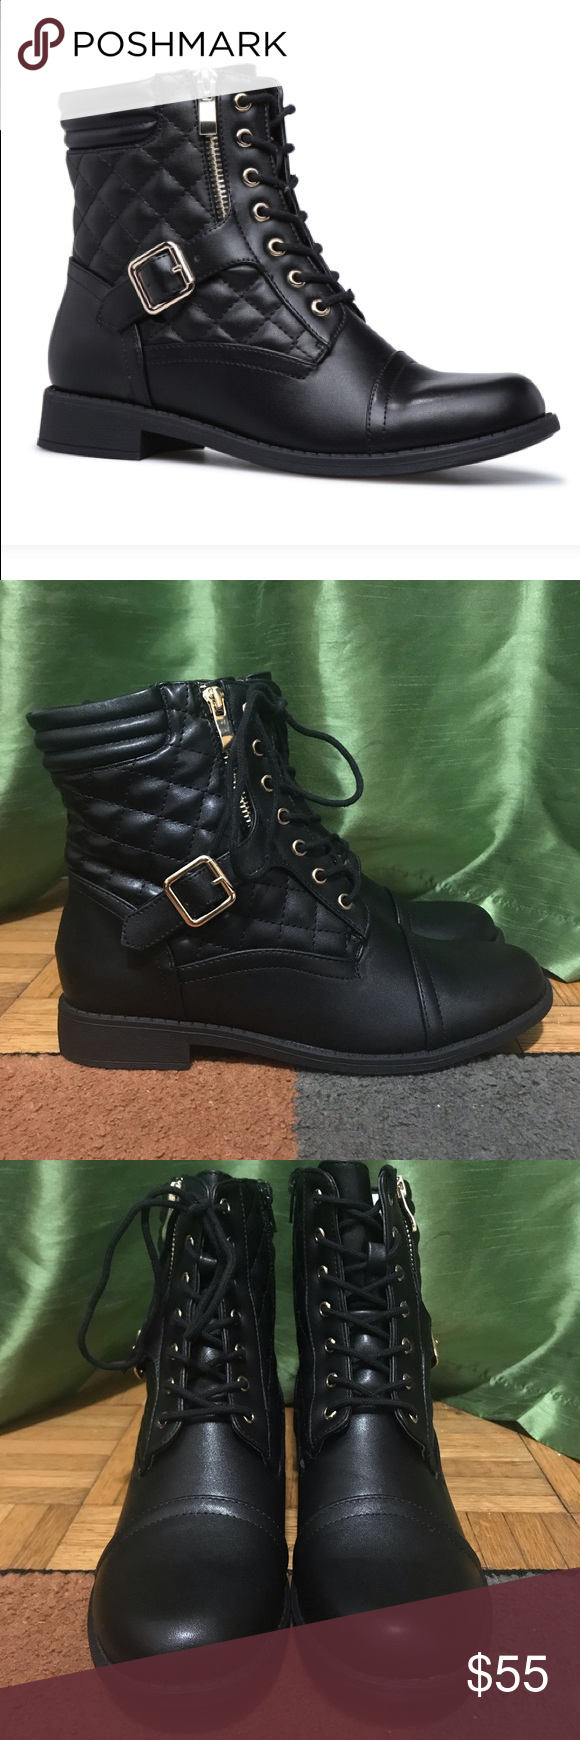 "e3319a2ec1d Shoe Dazzle Black Combat Boots 9W 🖤 🔥🔥 •Material  Faux-Leather •Calf  Circumference  Reg  16.5"" •Fit  True to Size •Color  Black •Outside Heel  Height  1"" ..."